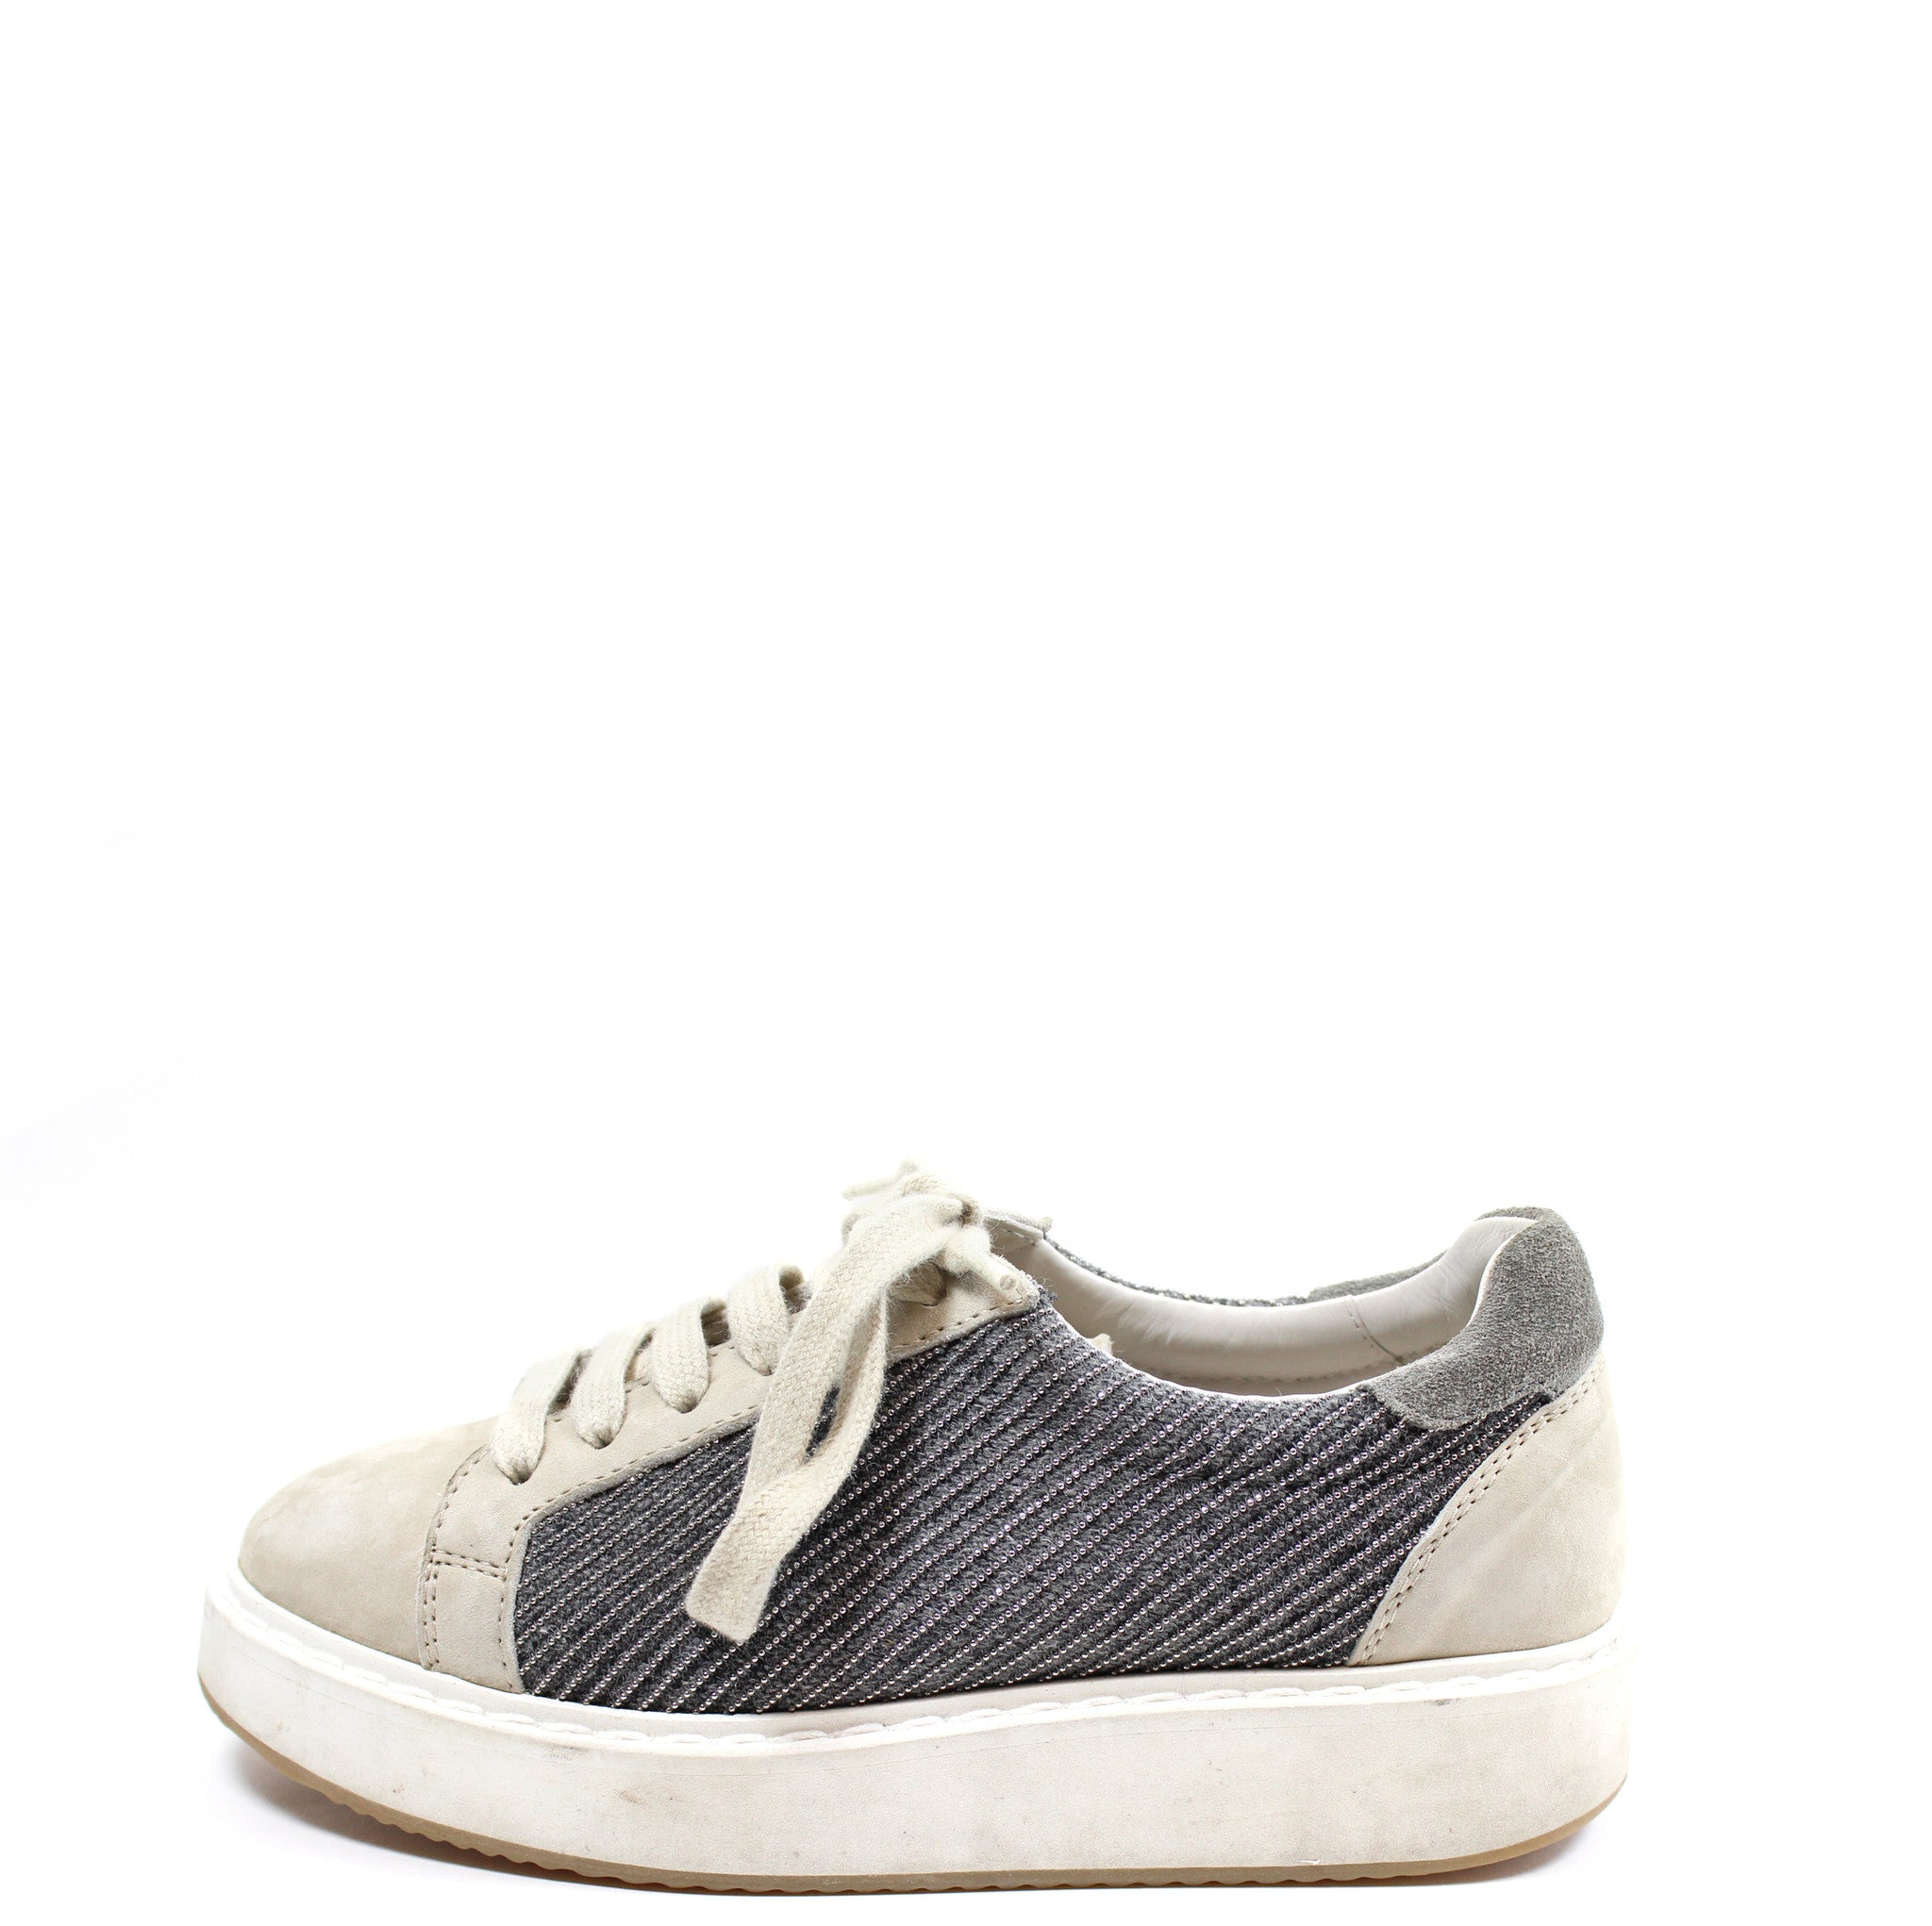 Brunello Cucinelli Suede Monili Beaded Sneakers (Size 36)